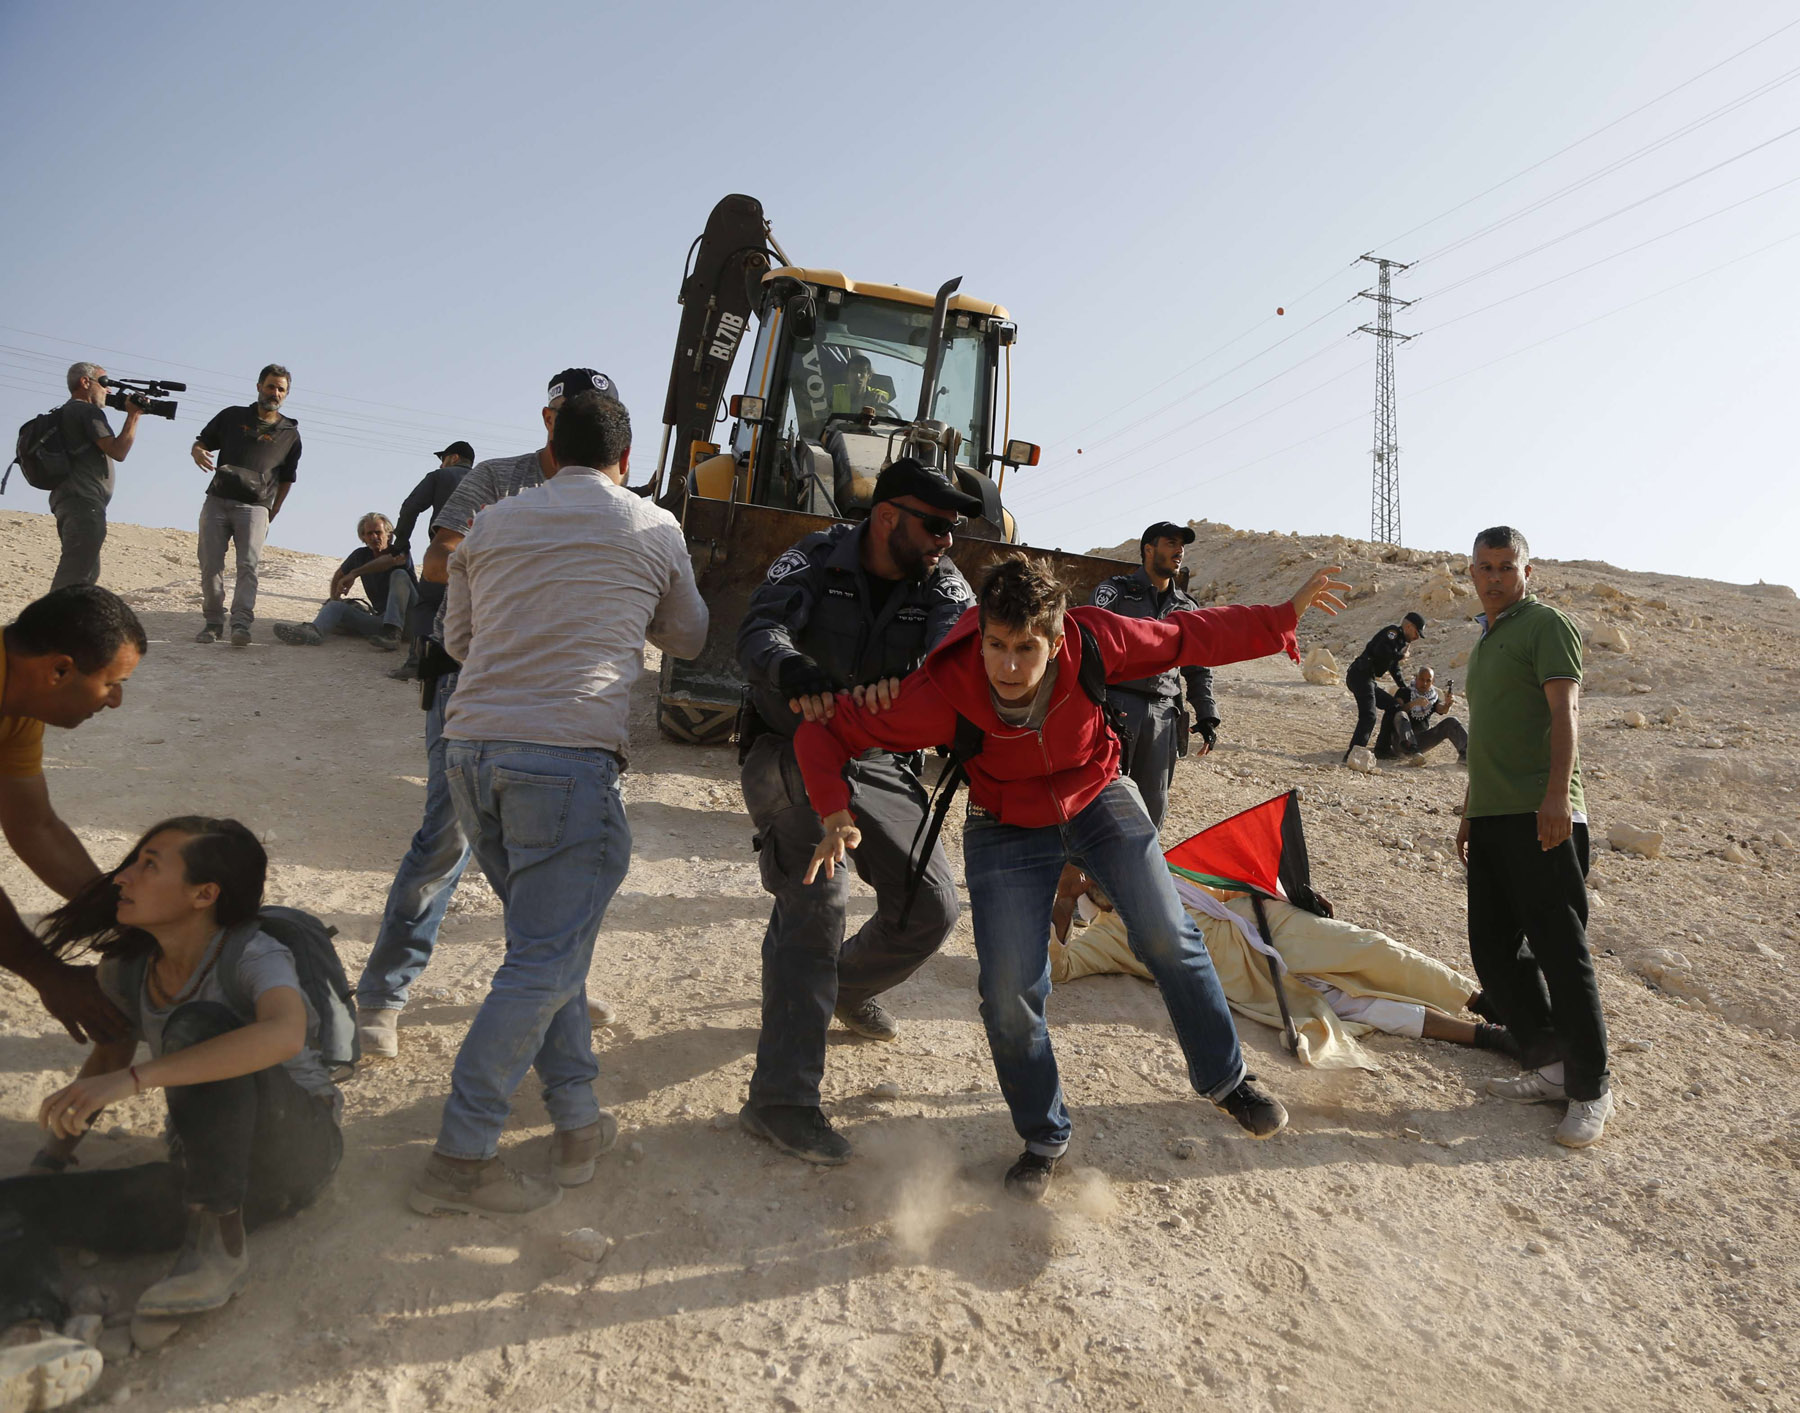 Israeli police scuffle with activists in the West Bank Bedouin village of Khan al-Ahmar which is slated for demolition, October 15. (AP)